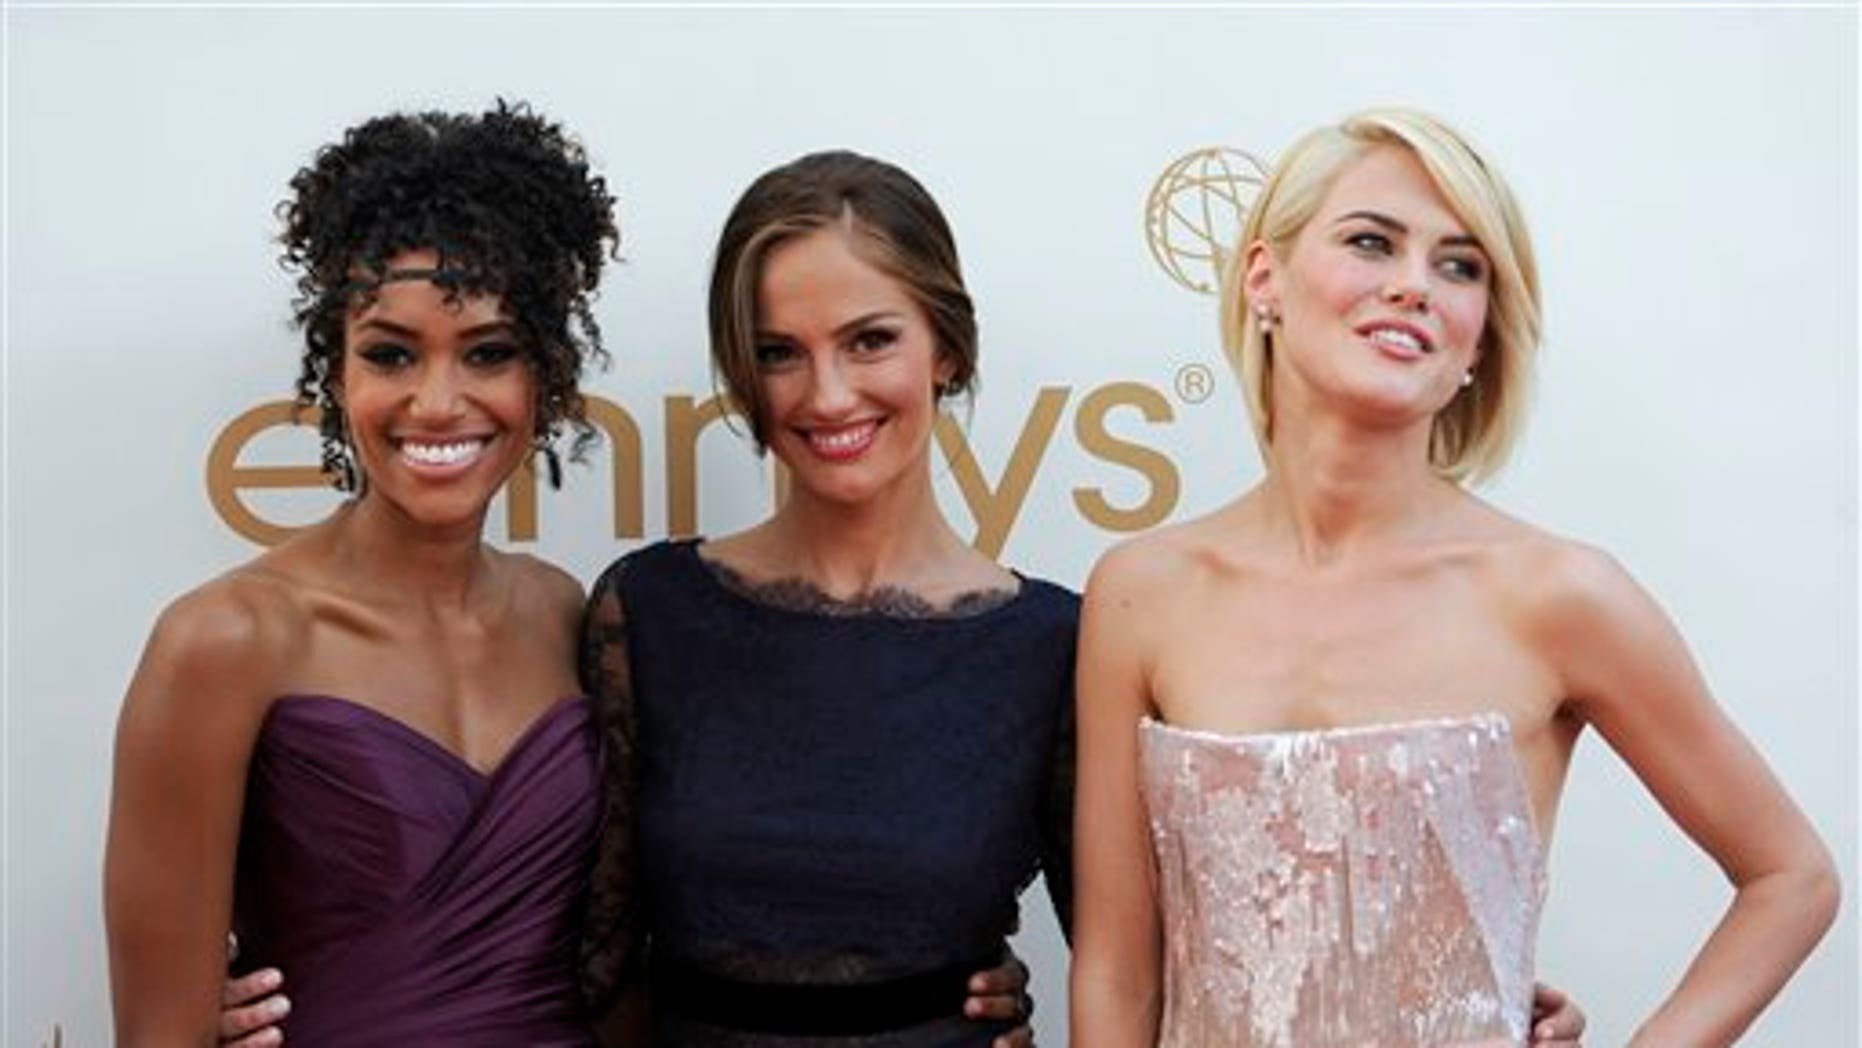 Sept. 18: From left, Annie Ilonzeh,Minka Kelly and Rachael Taylor, of the new Charlie's Angels, arrive at the 63rd Primetime Emmy Awards. (AP)